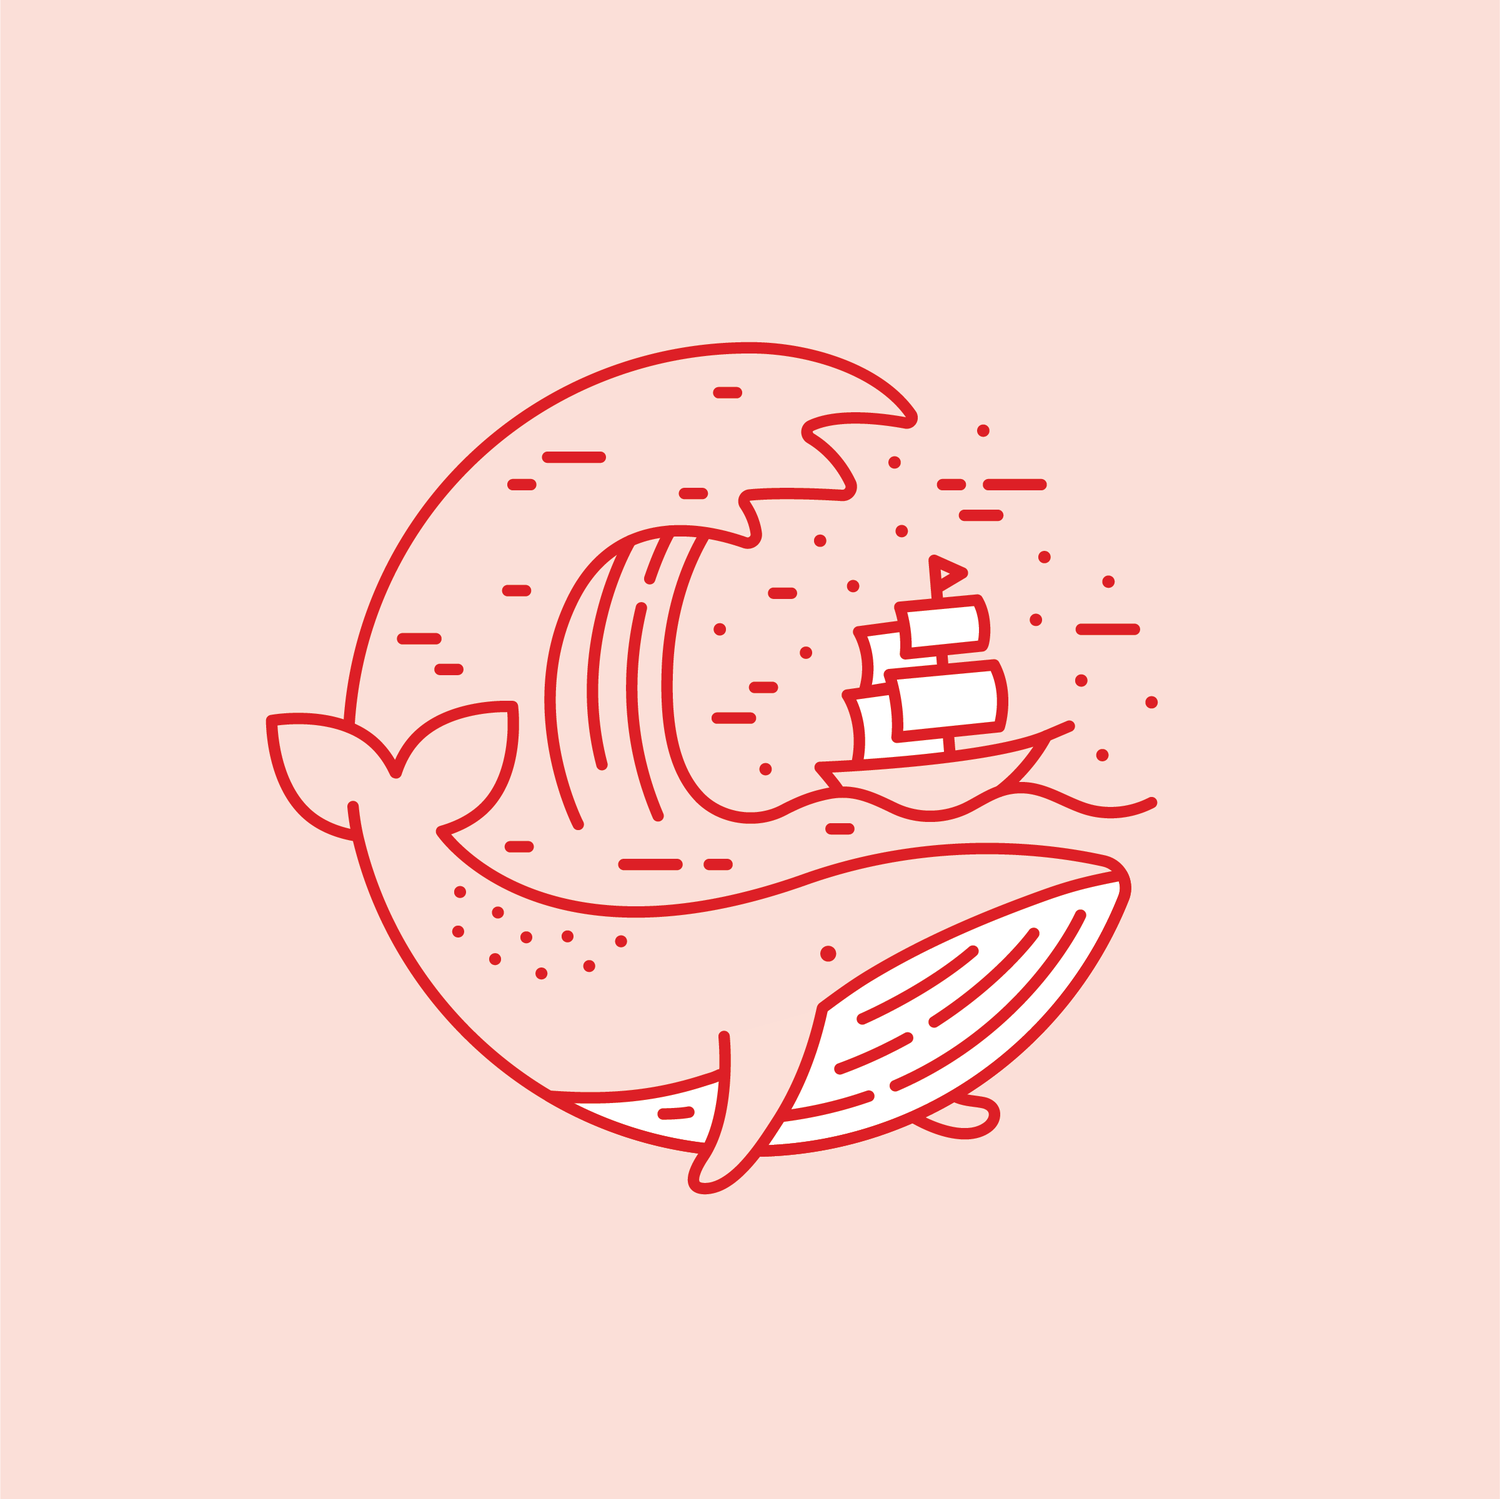 whale-06.png